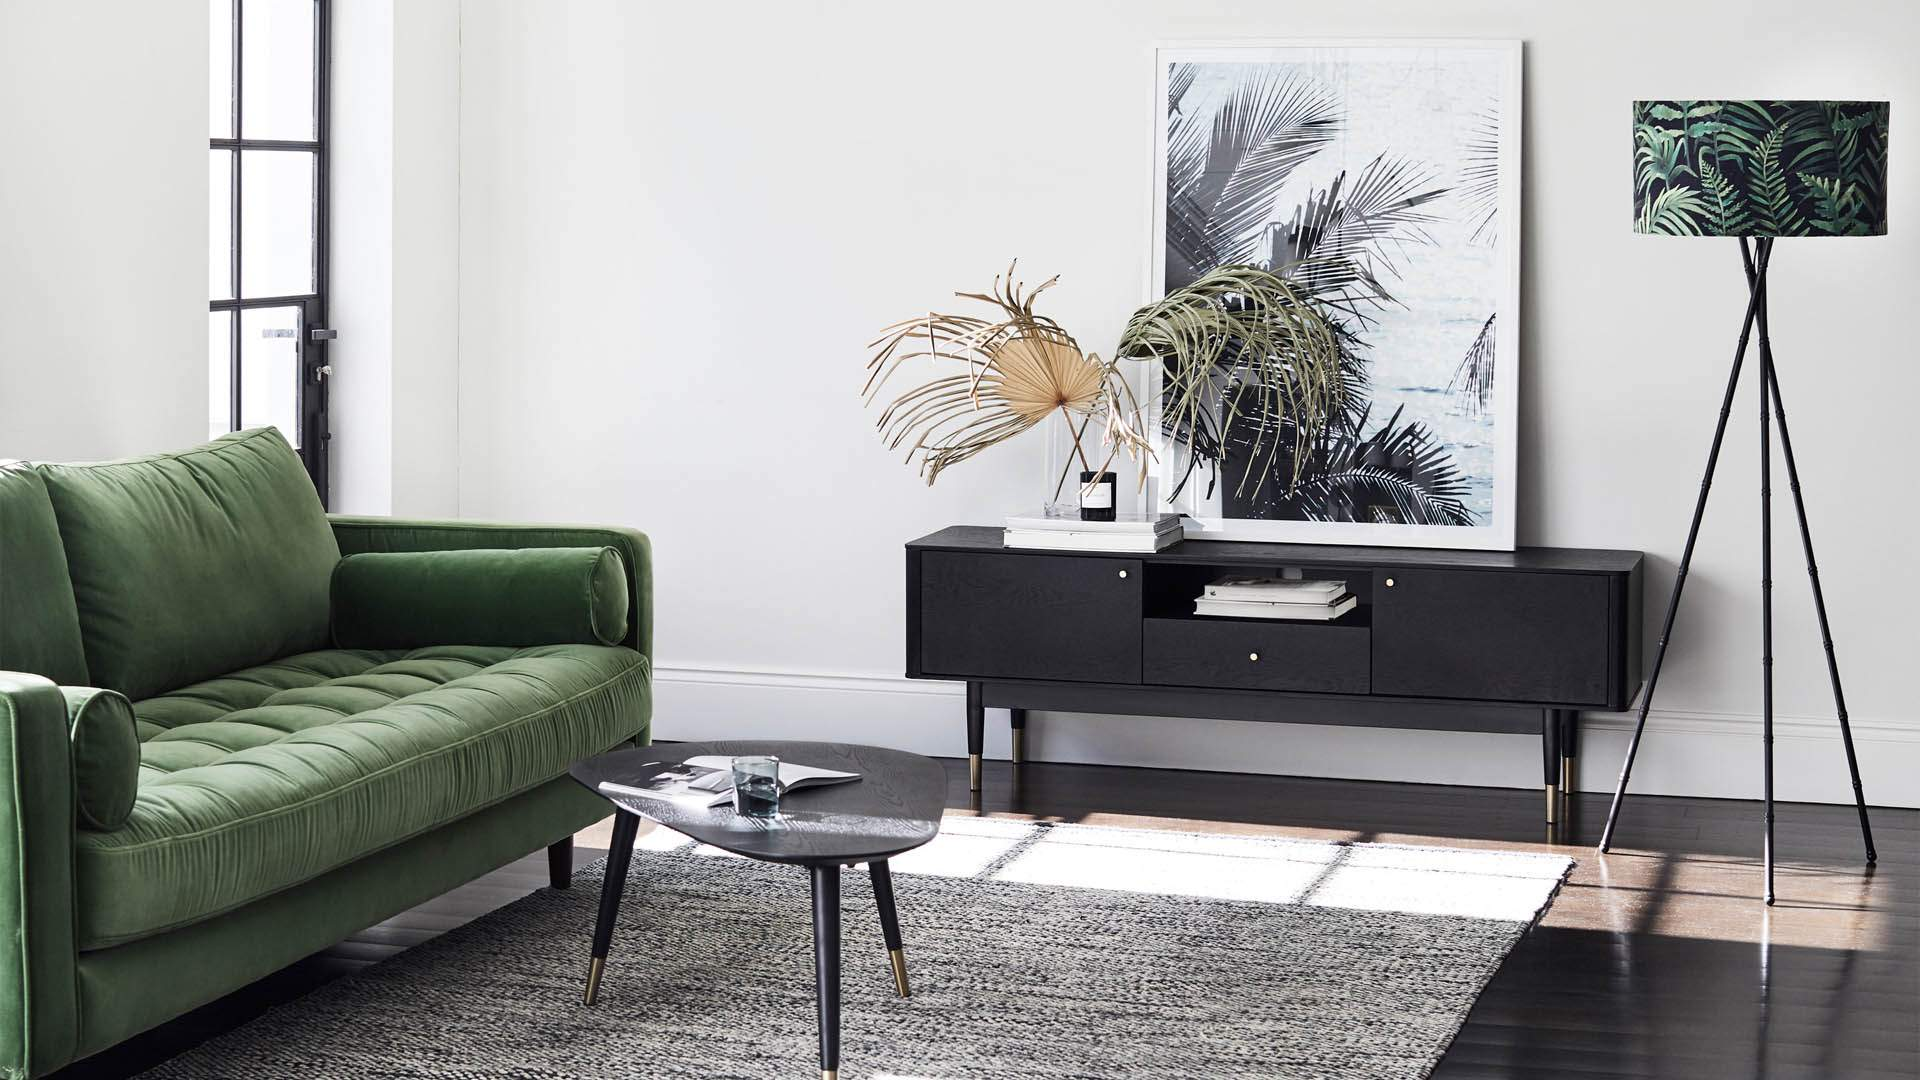 Seven Must-Have Homeware Items That'll Make Your Rental Apartment Feel More Like Home